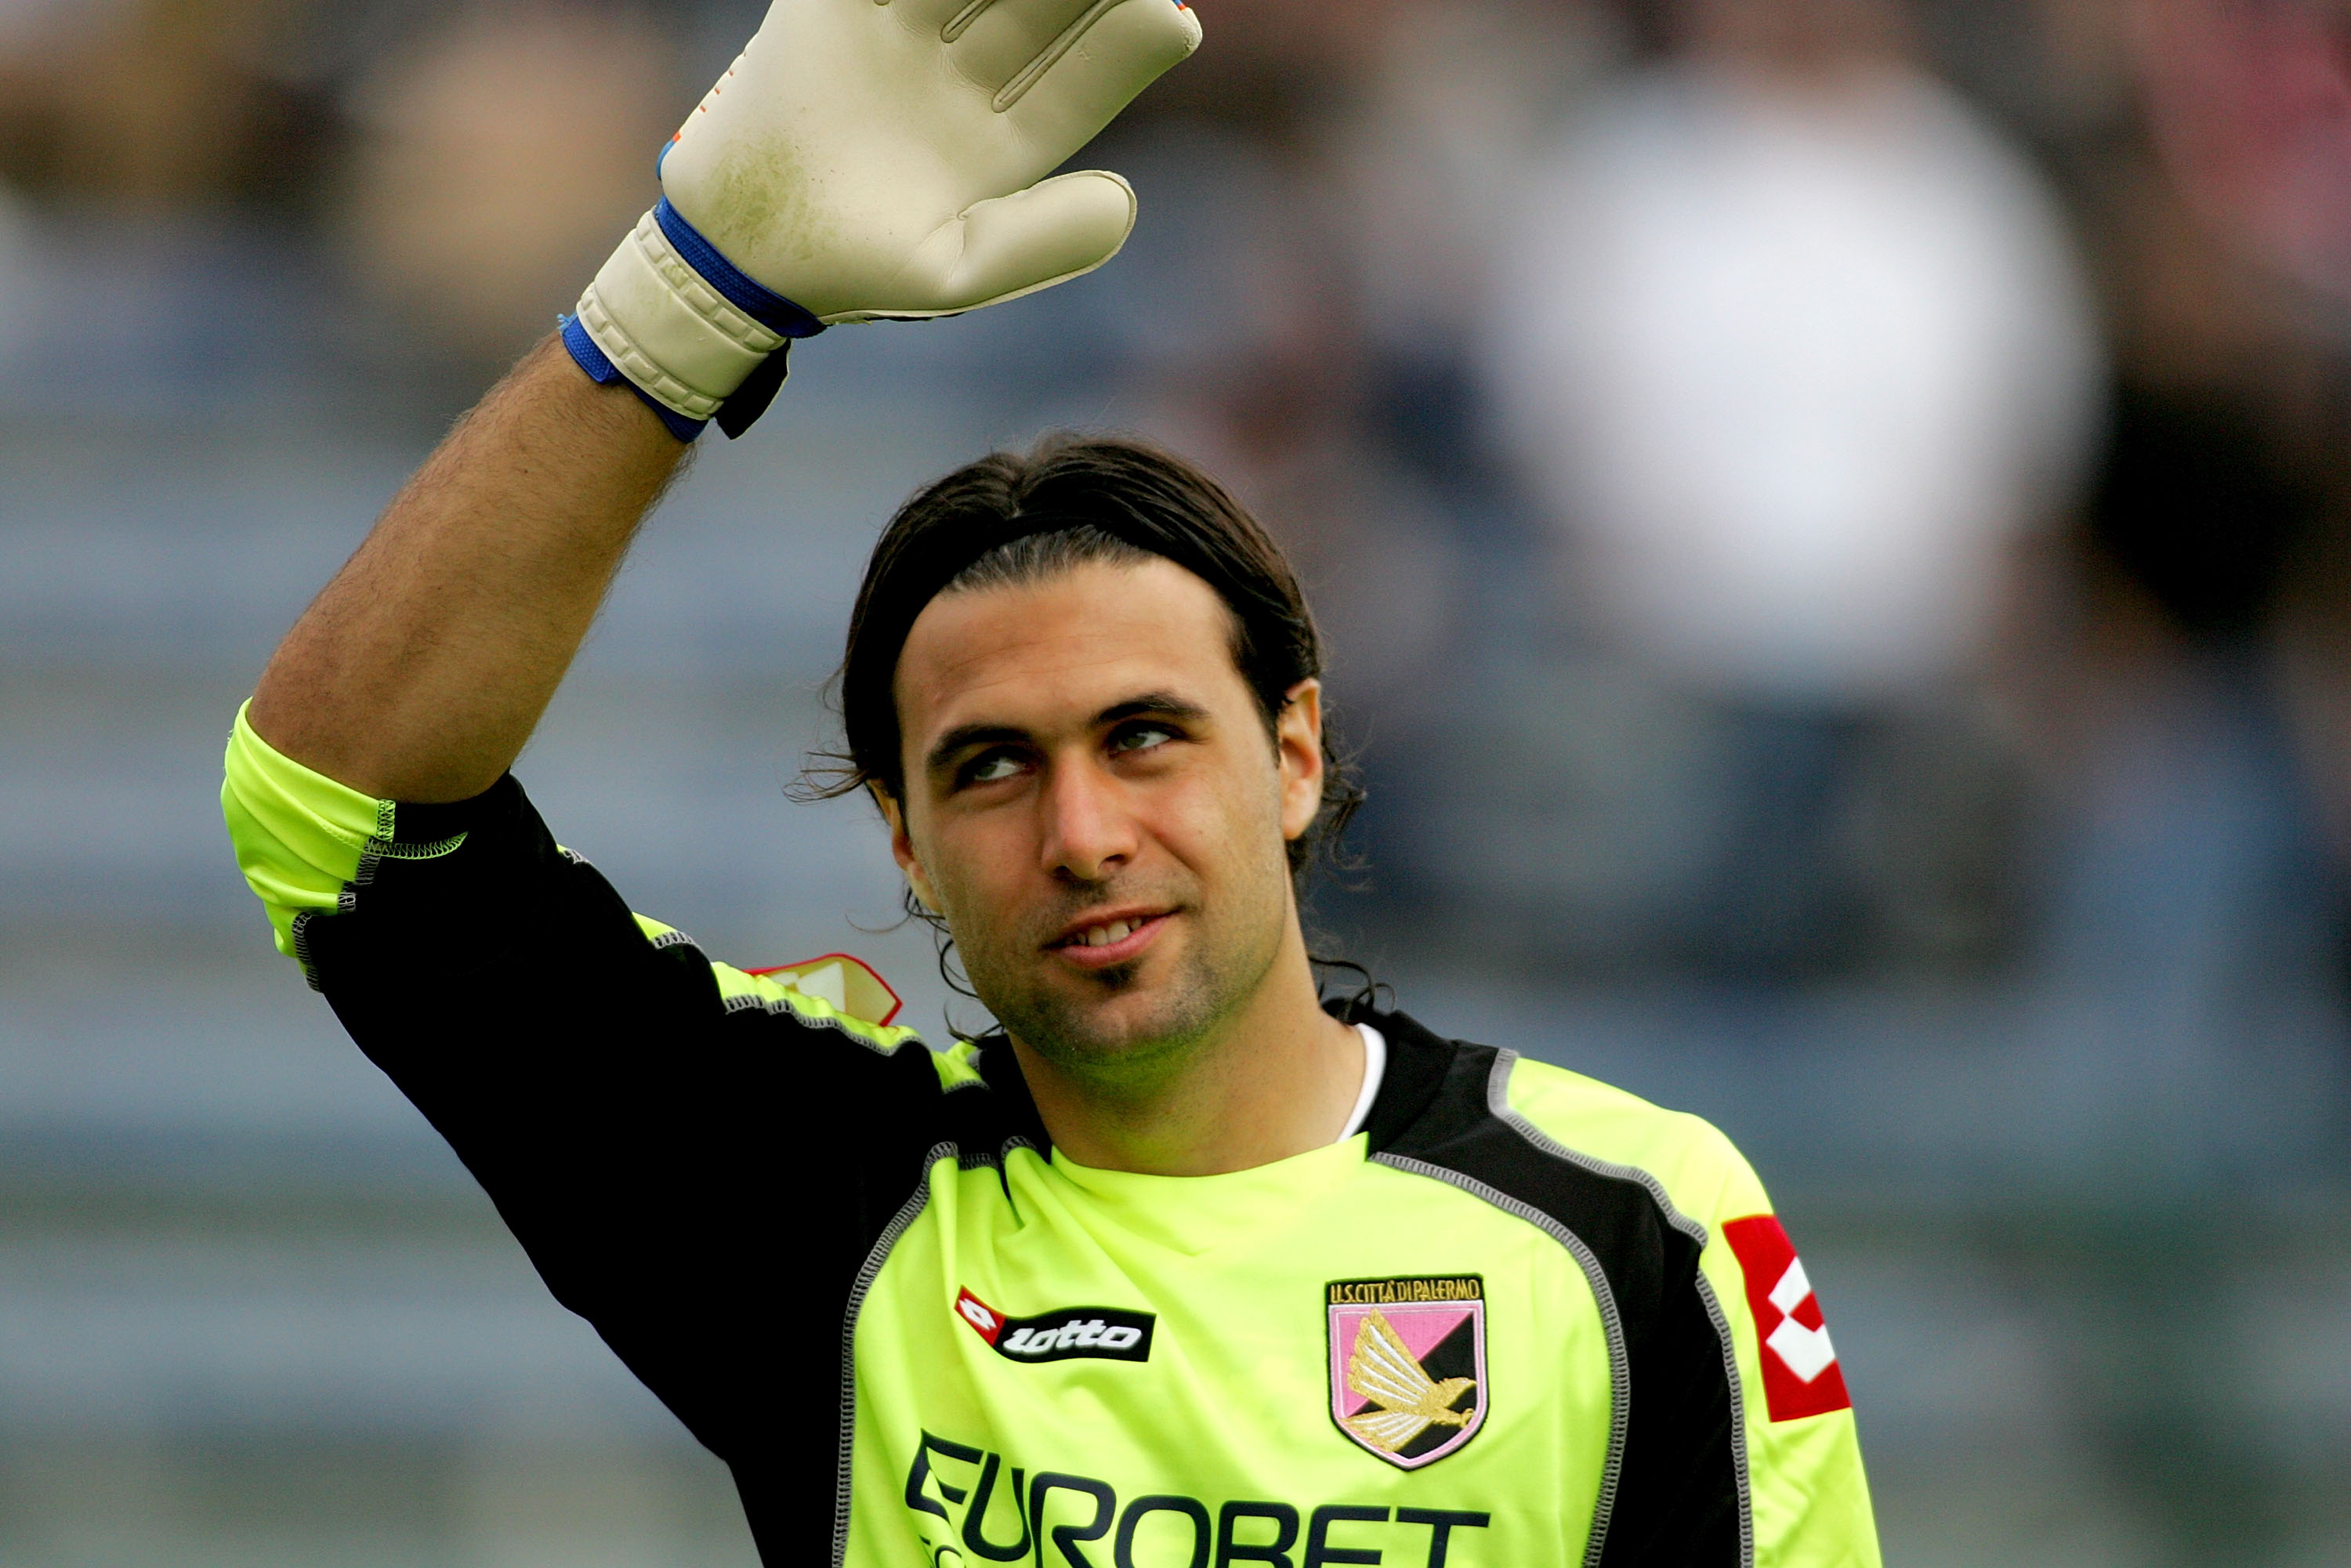 Palermo's Salvatore Sirigu is the best bargain in goal at just 200,000 euros.